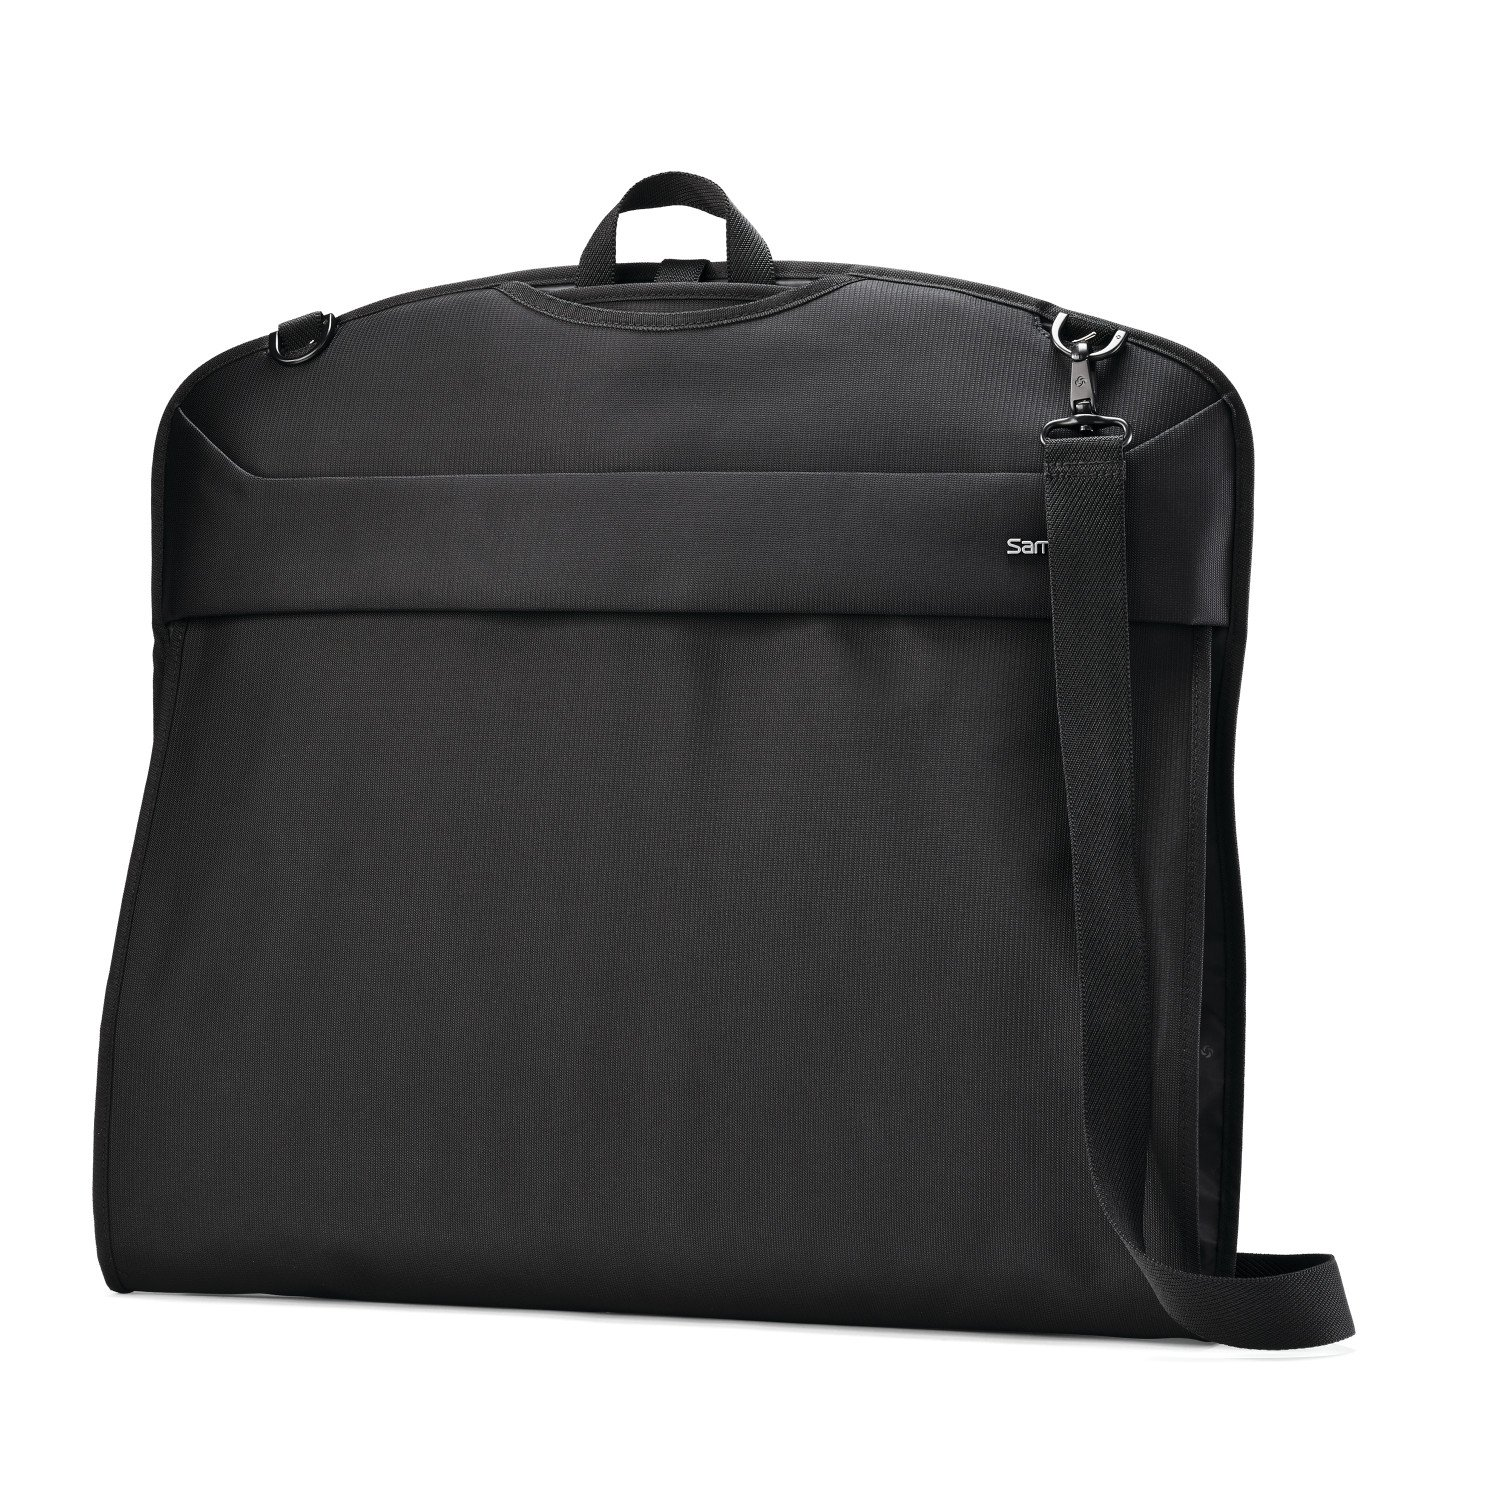 Samsonite Flexis Garment Sleeve, Jet Black